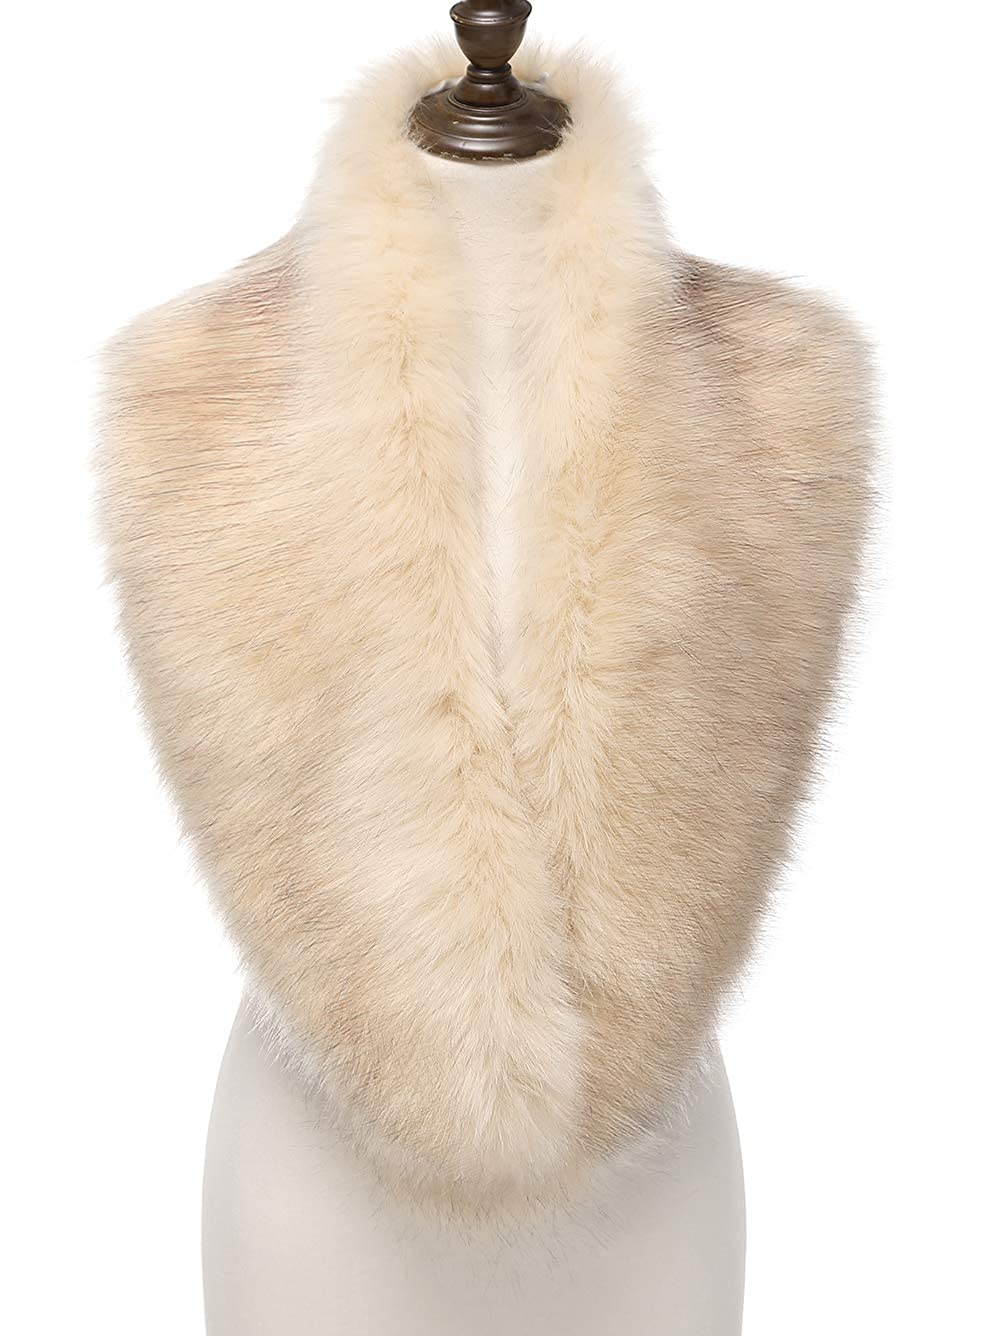 Victorian Clothing, Costumes & 1800s Fashion Changuan Faux Fur Collar Shawl Womens Neck Warmer Scarf Wrap Evening Cape for Winter Coat  AT vintagedancer.com